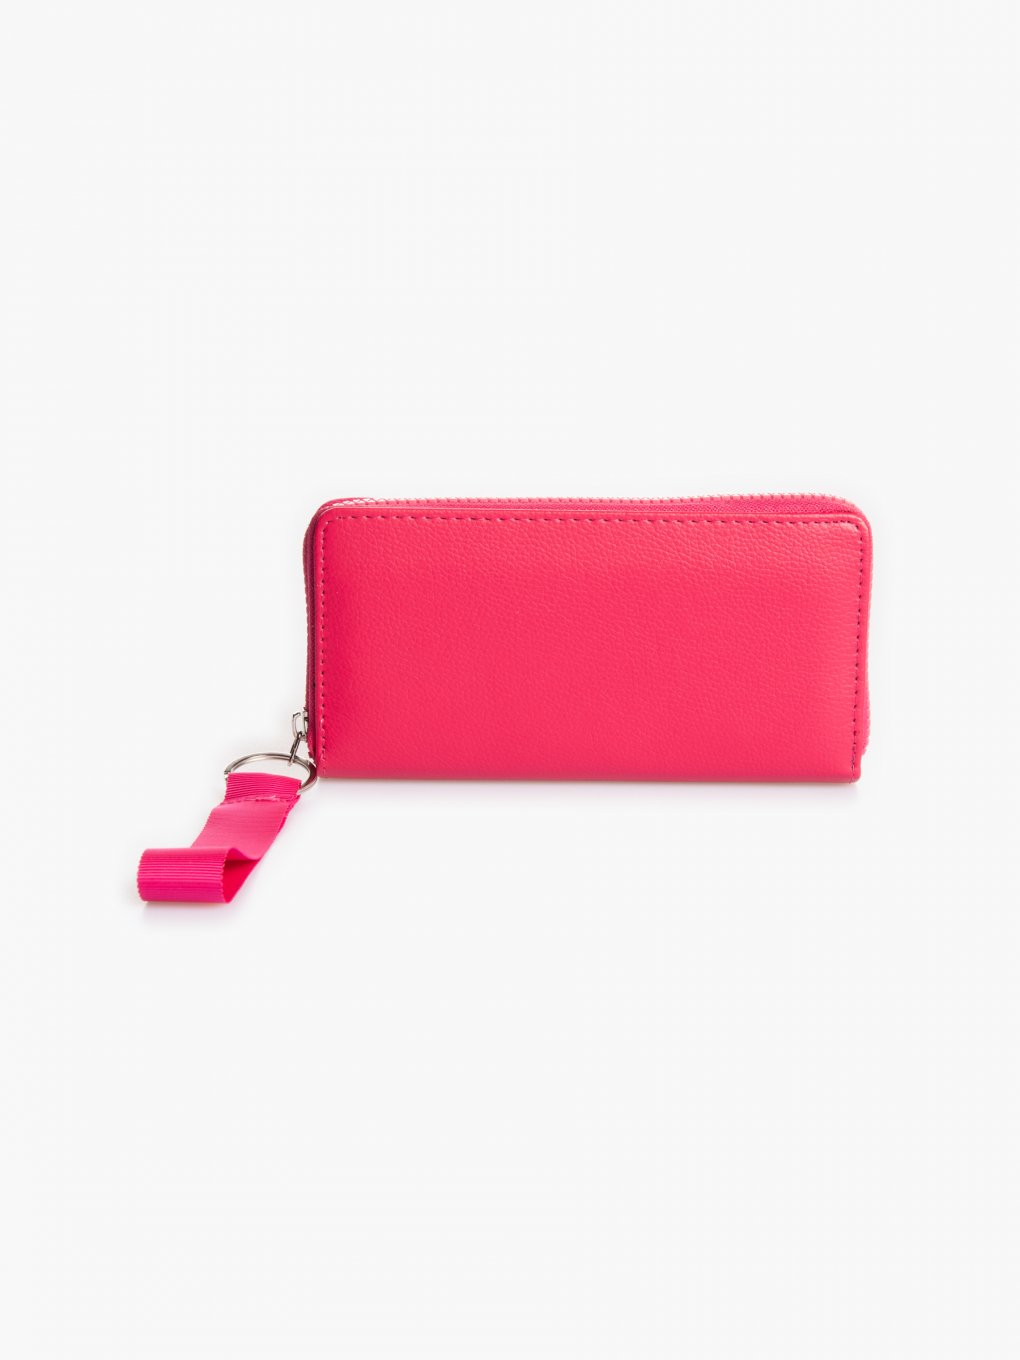 Wallet with textile strap